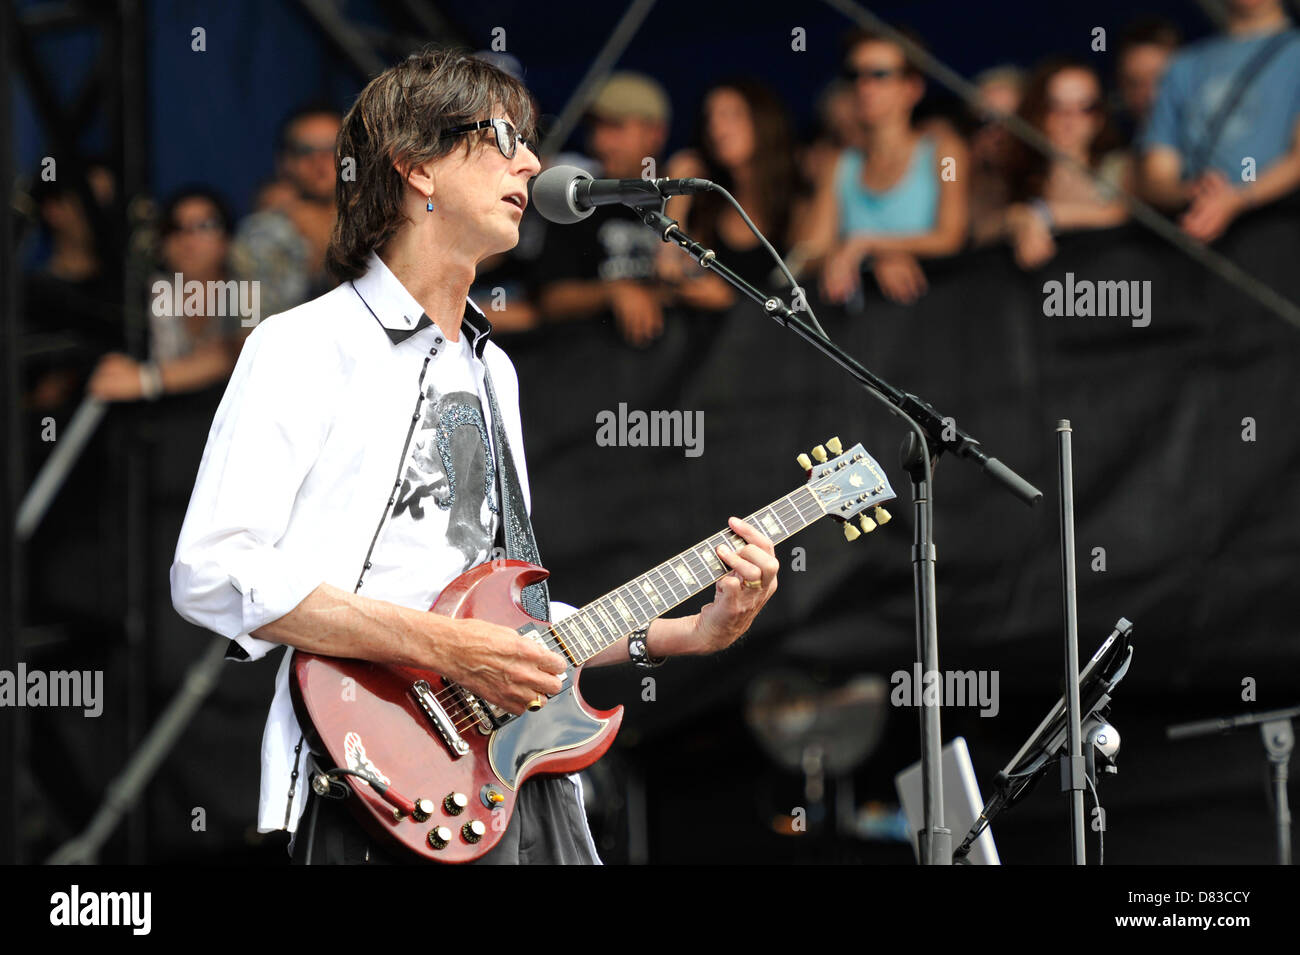 The Cars Lollapalooza Music Festival 2011 - Performances - Day 3 Chicago, Illinois - 07.08.11 - Stock Image